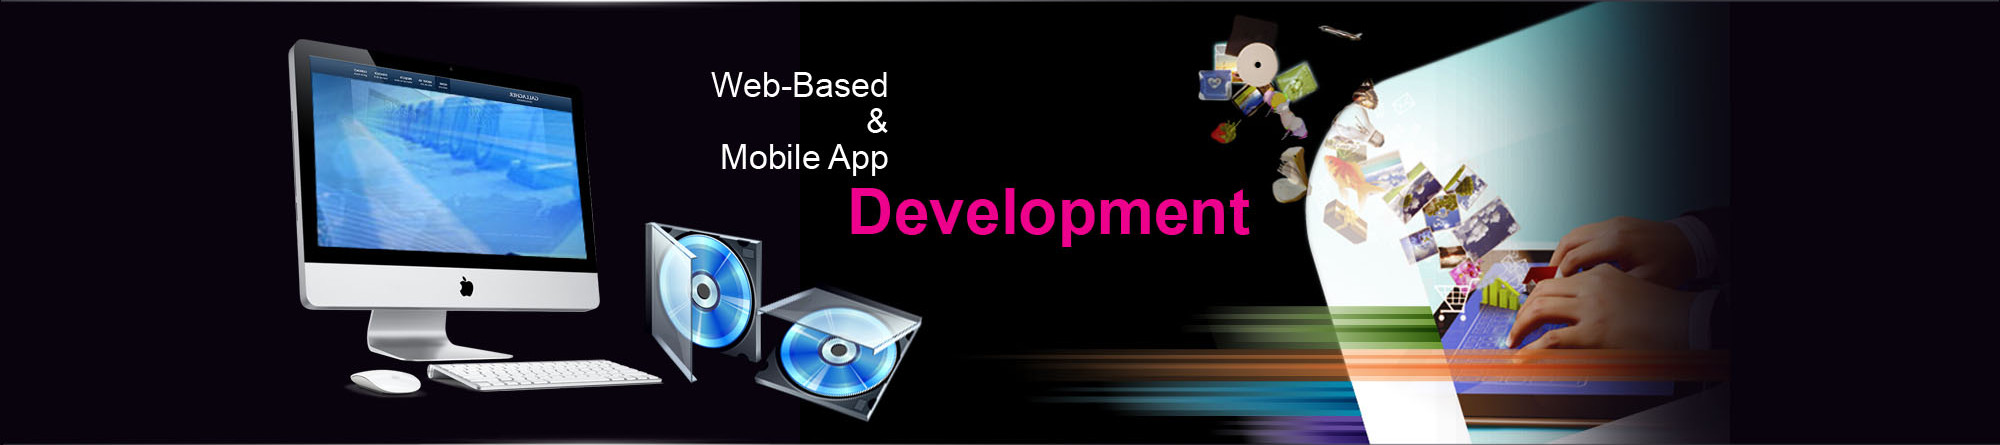 Web-Based & Mobile App Development